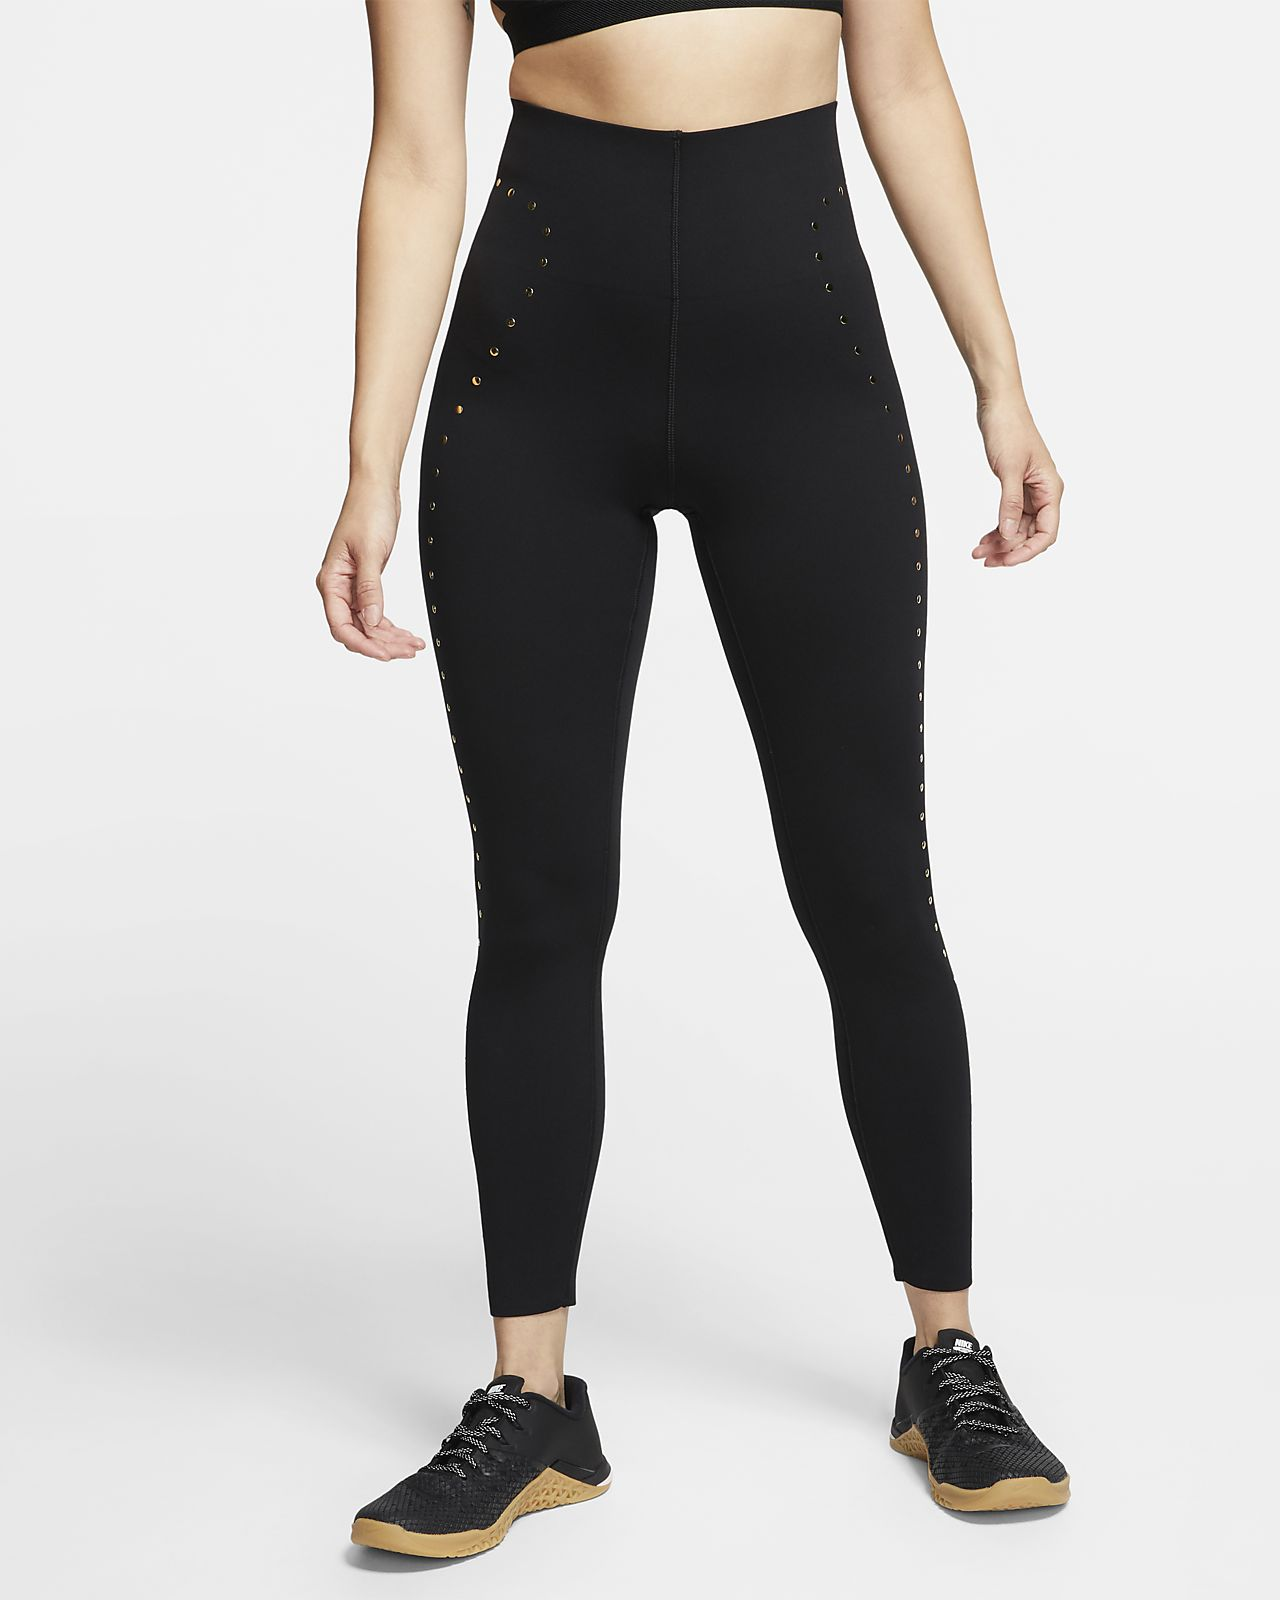 Nike Women's 7/8 Studded Training Tights